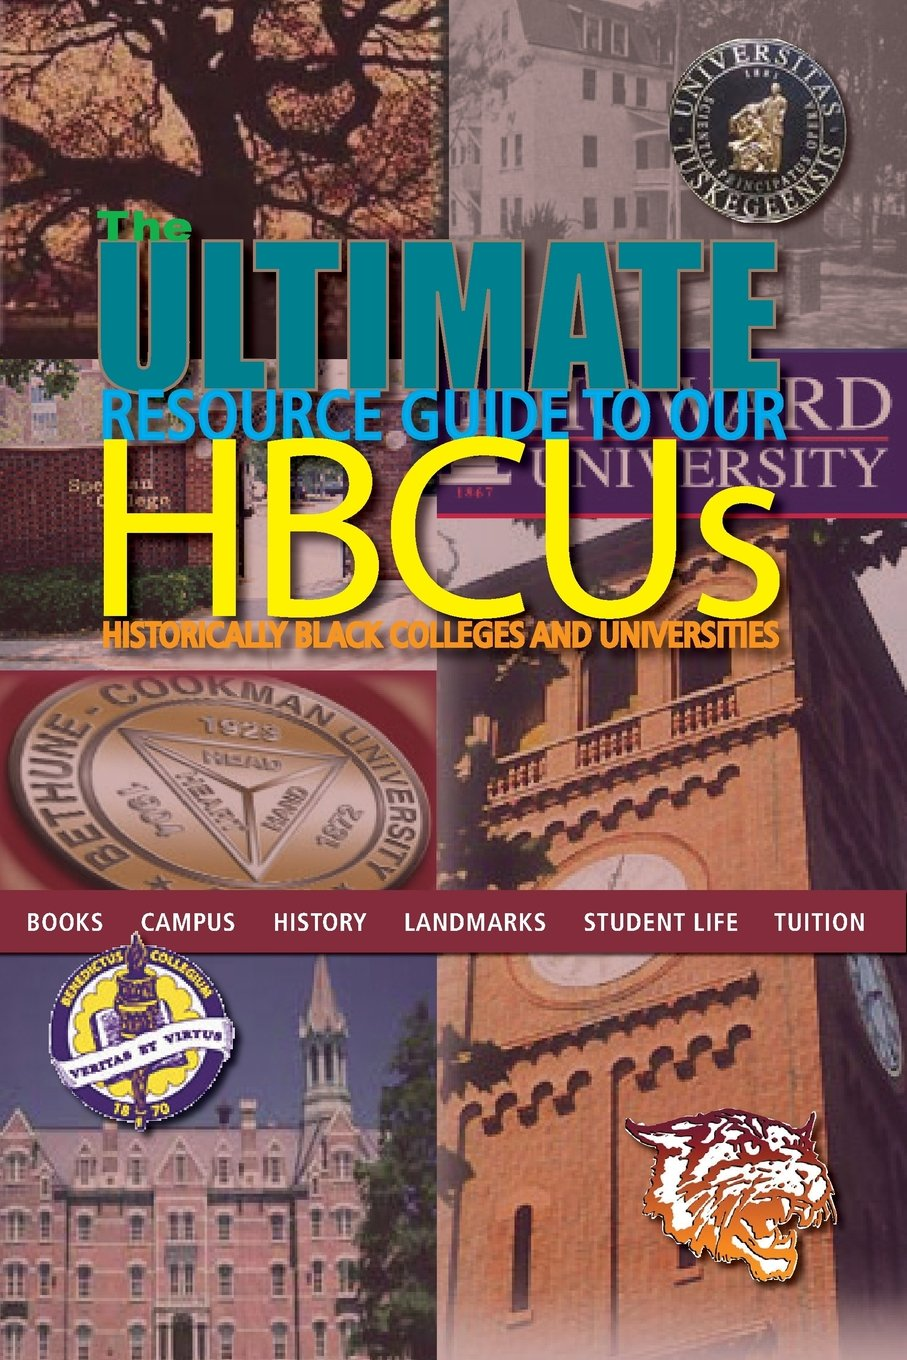 Amazon.com: The Ultimate Resource Guide to Our HBCUs (9780983073109): LeTay  Publishing: Books